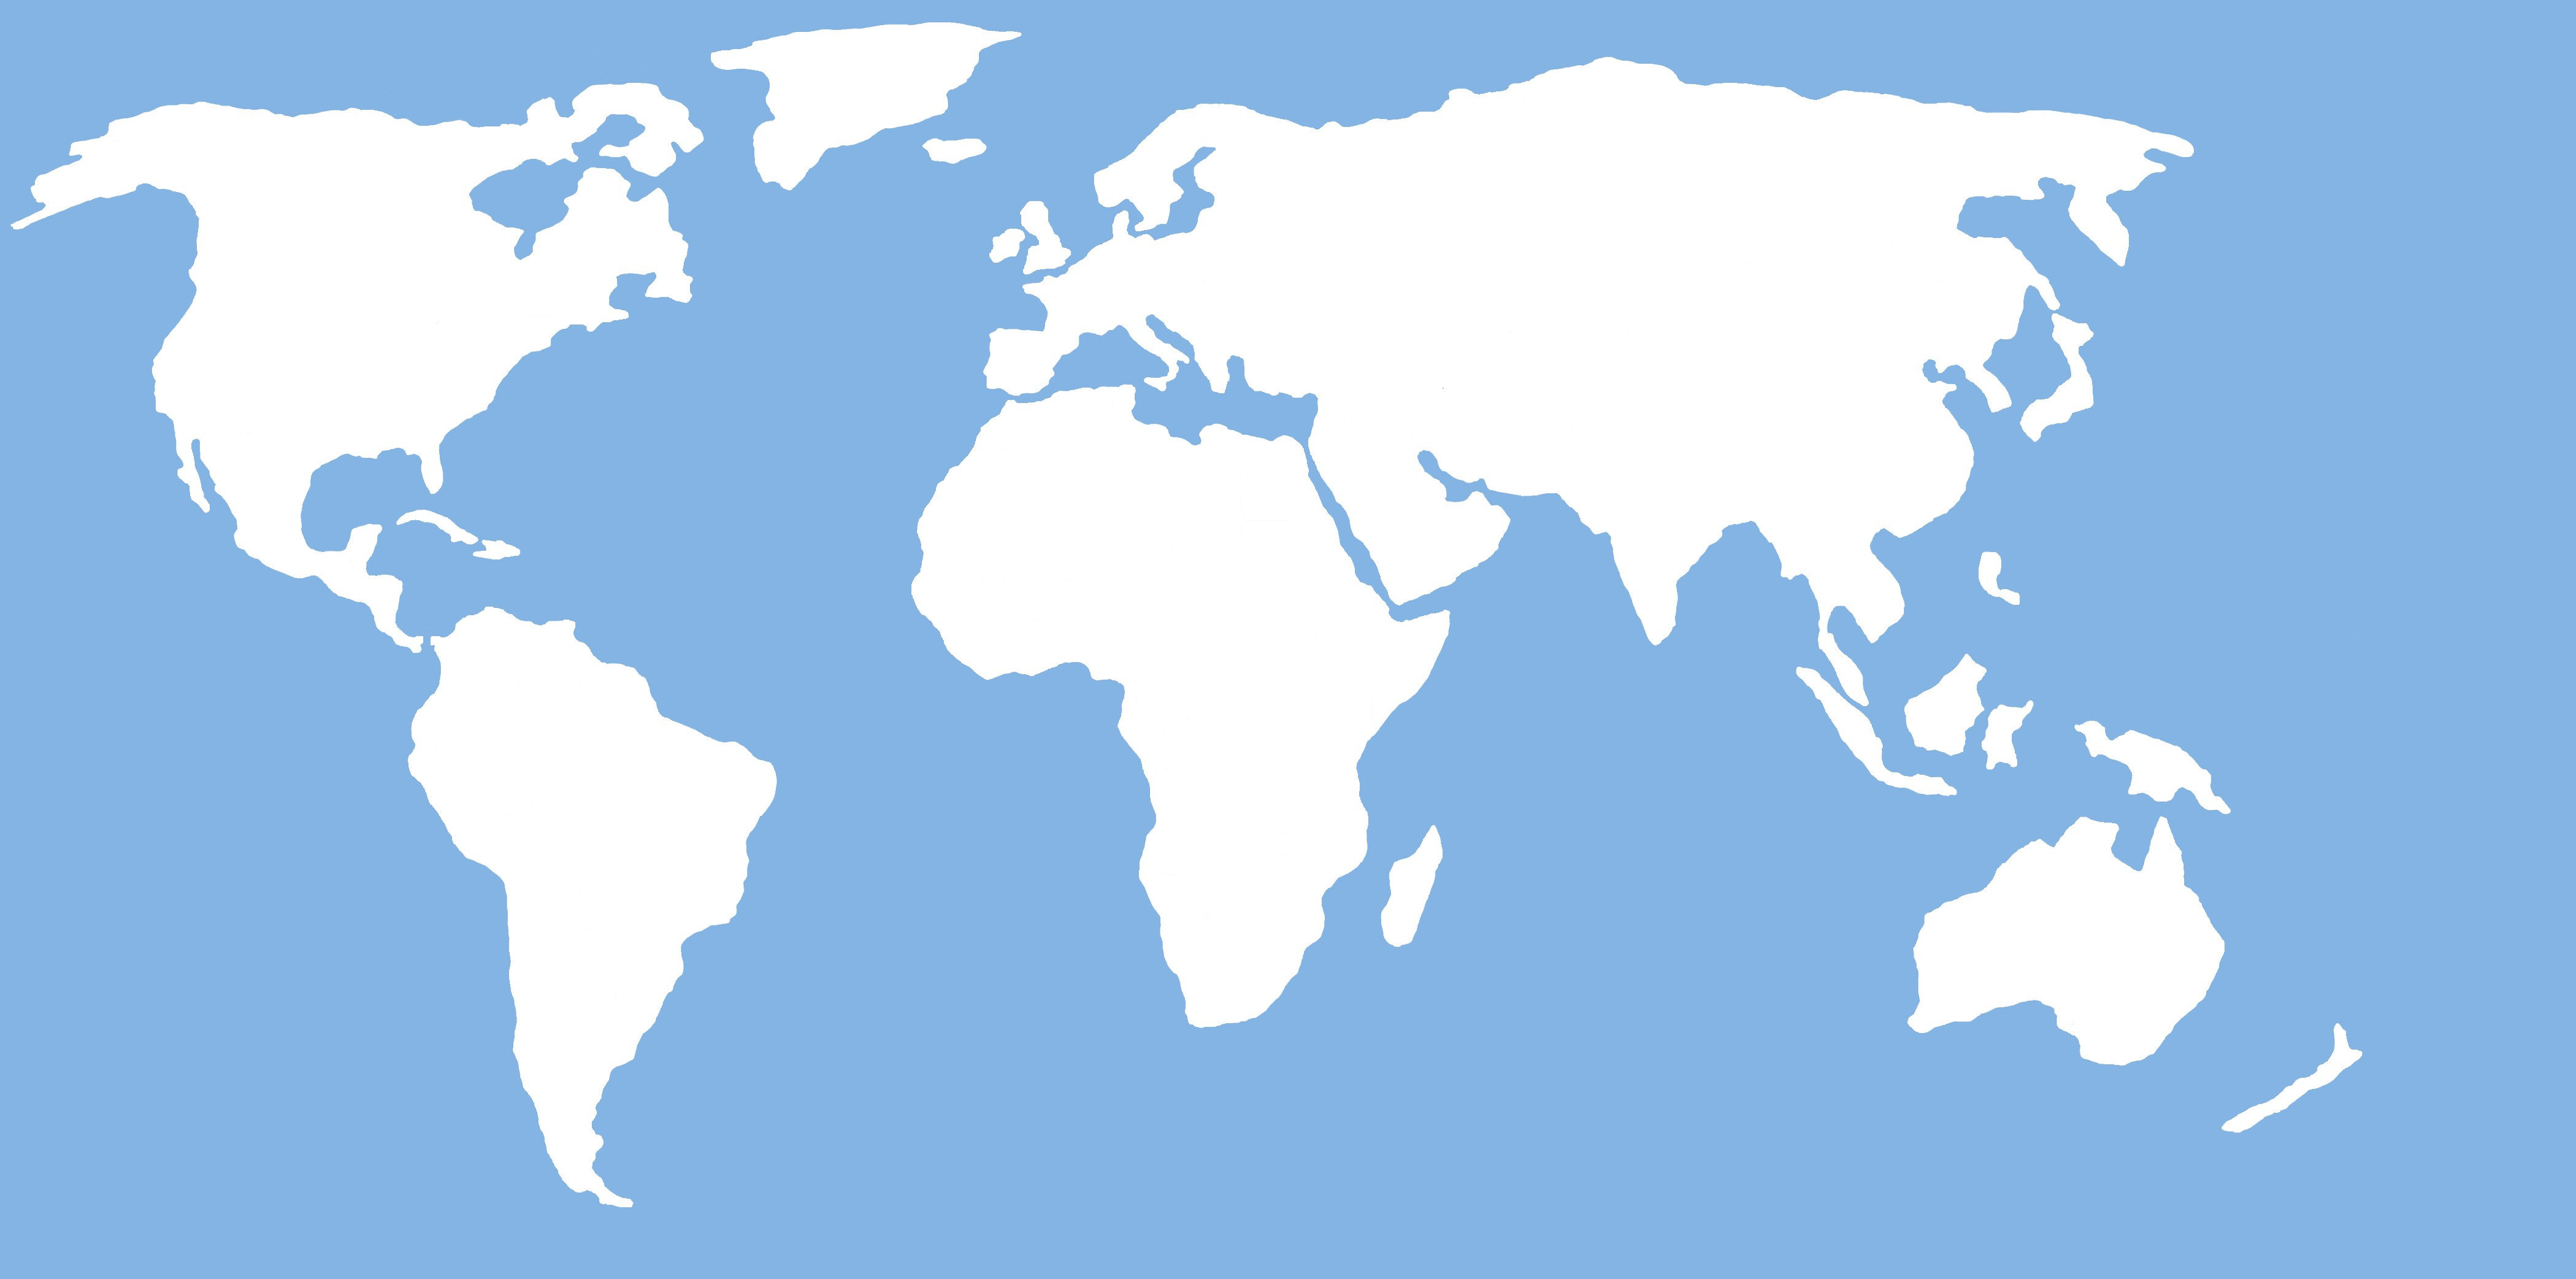 4200x2085 Flat World Map Outline Simple World Map Outline Vector Fresh